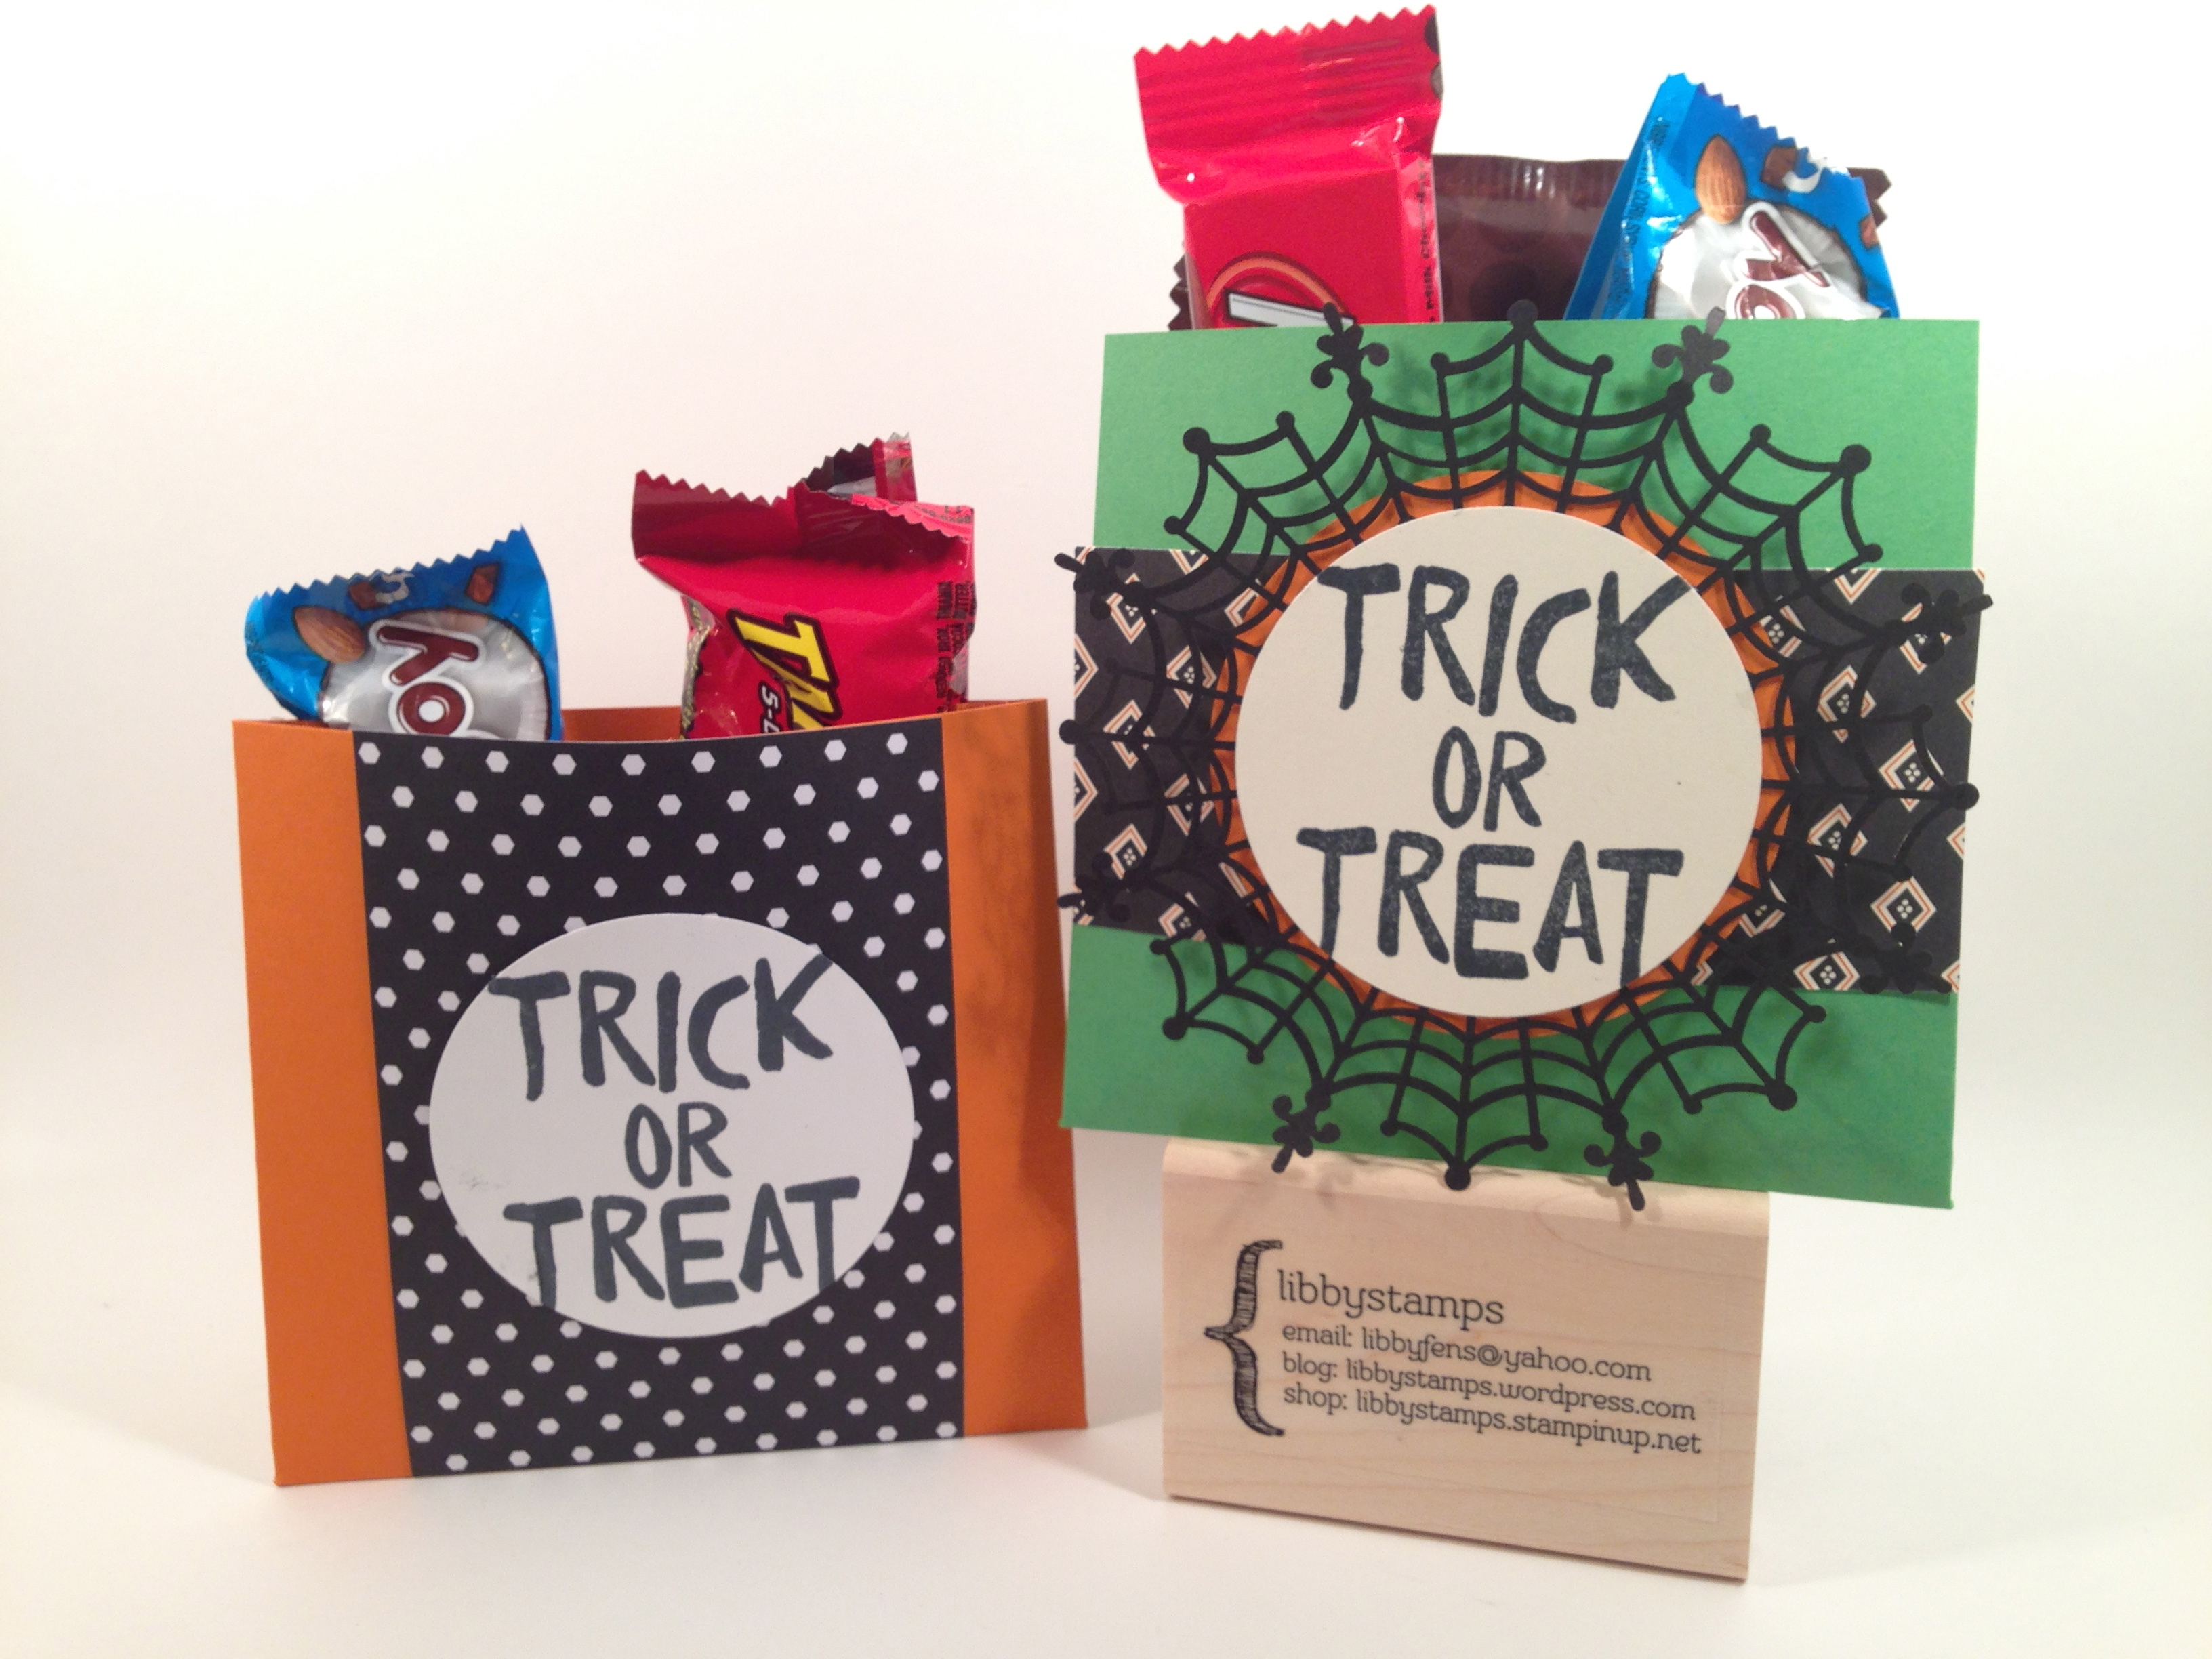 libbystamps, Stampin' Up, Halloween treat, Howl-O-Ween Treat Stamp Set, Happy Haunting DSP, Go Wild DSP Stack, Spider Web Doilies